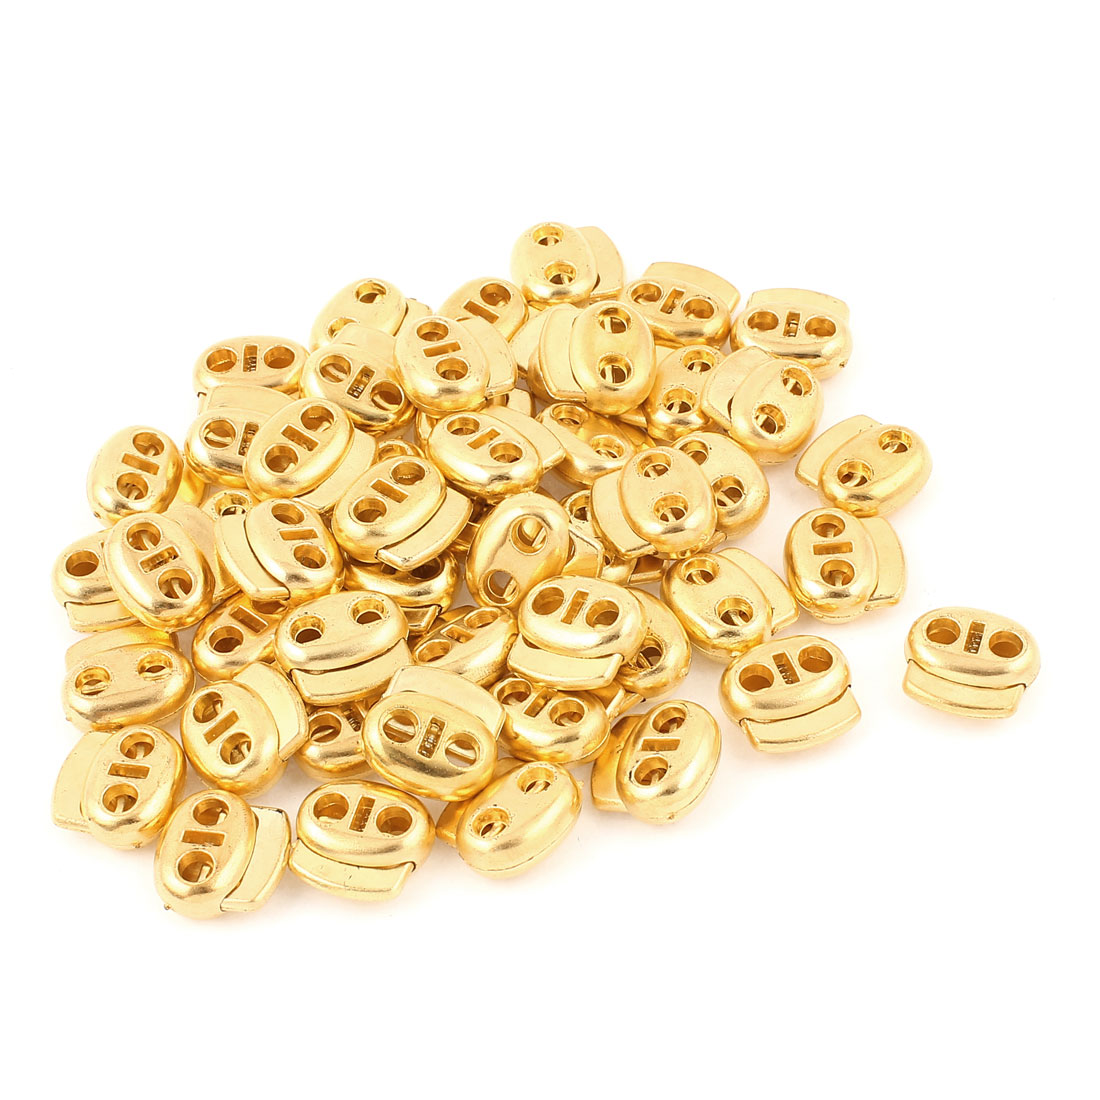 50 Pcs Dual Holes Cord Lock Stopper Toggles Spring Adjuster Fastener Gold Tone